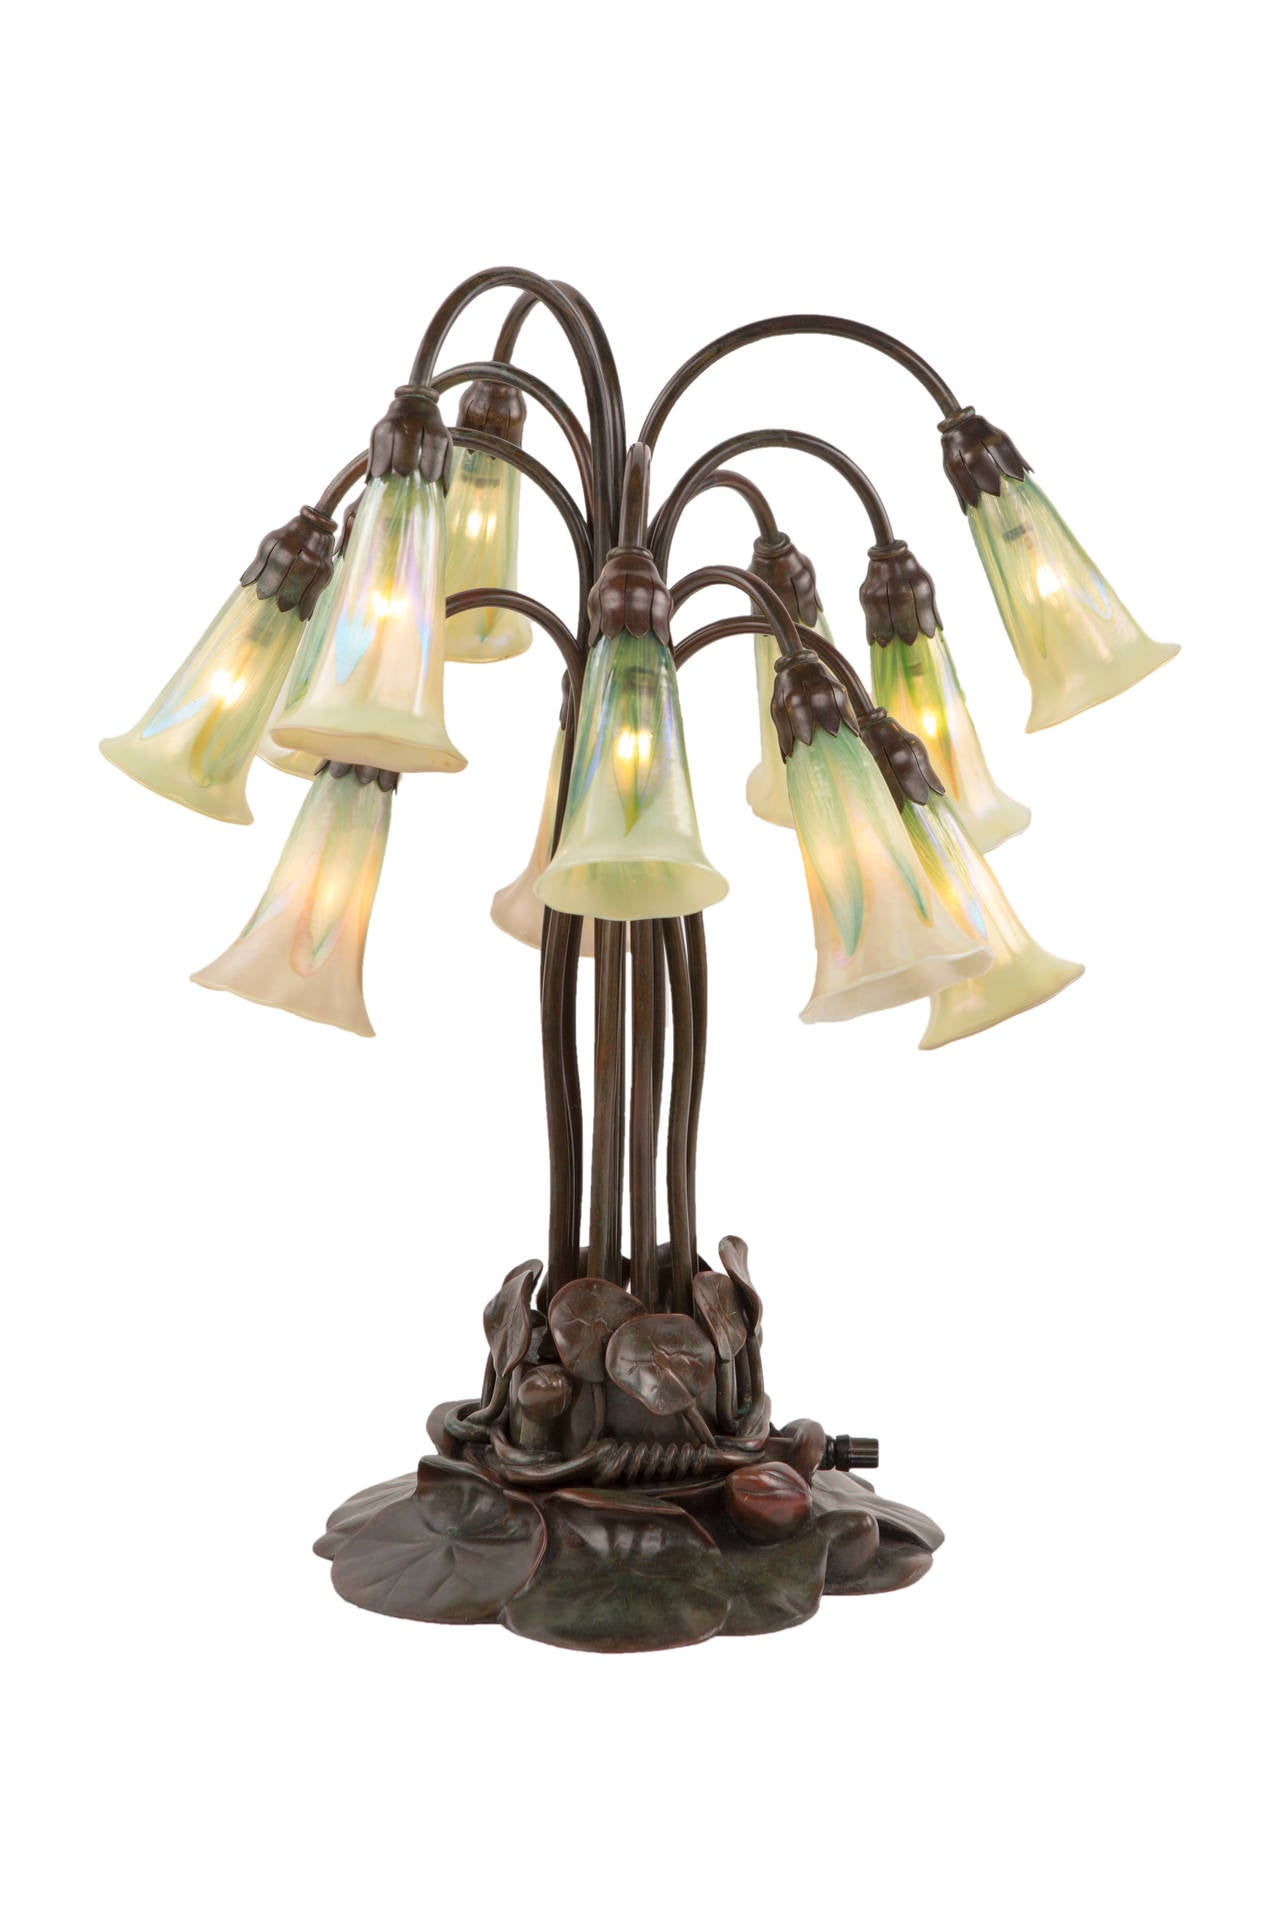 An exceptional and rare American Art Nouveau patinated bronze and glass